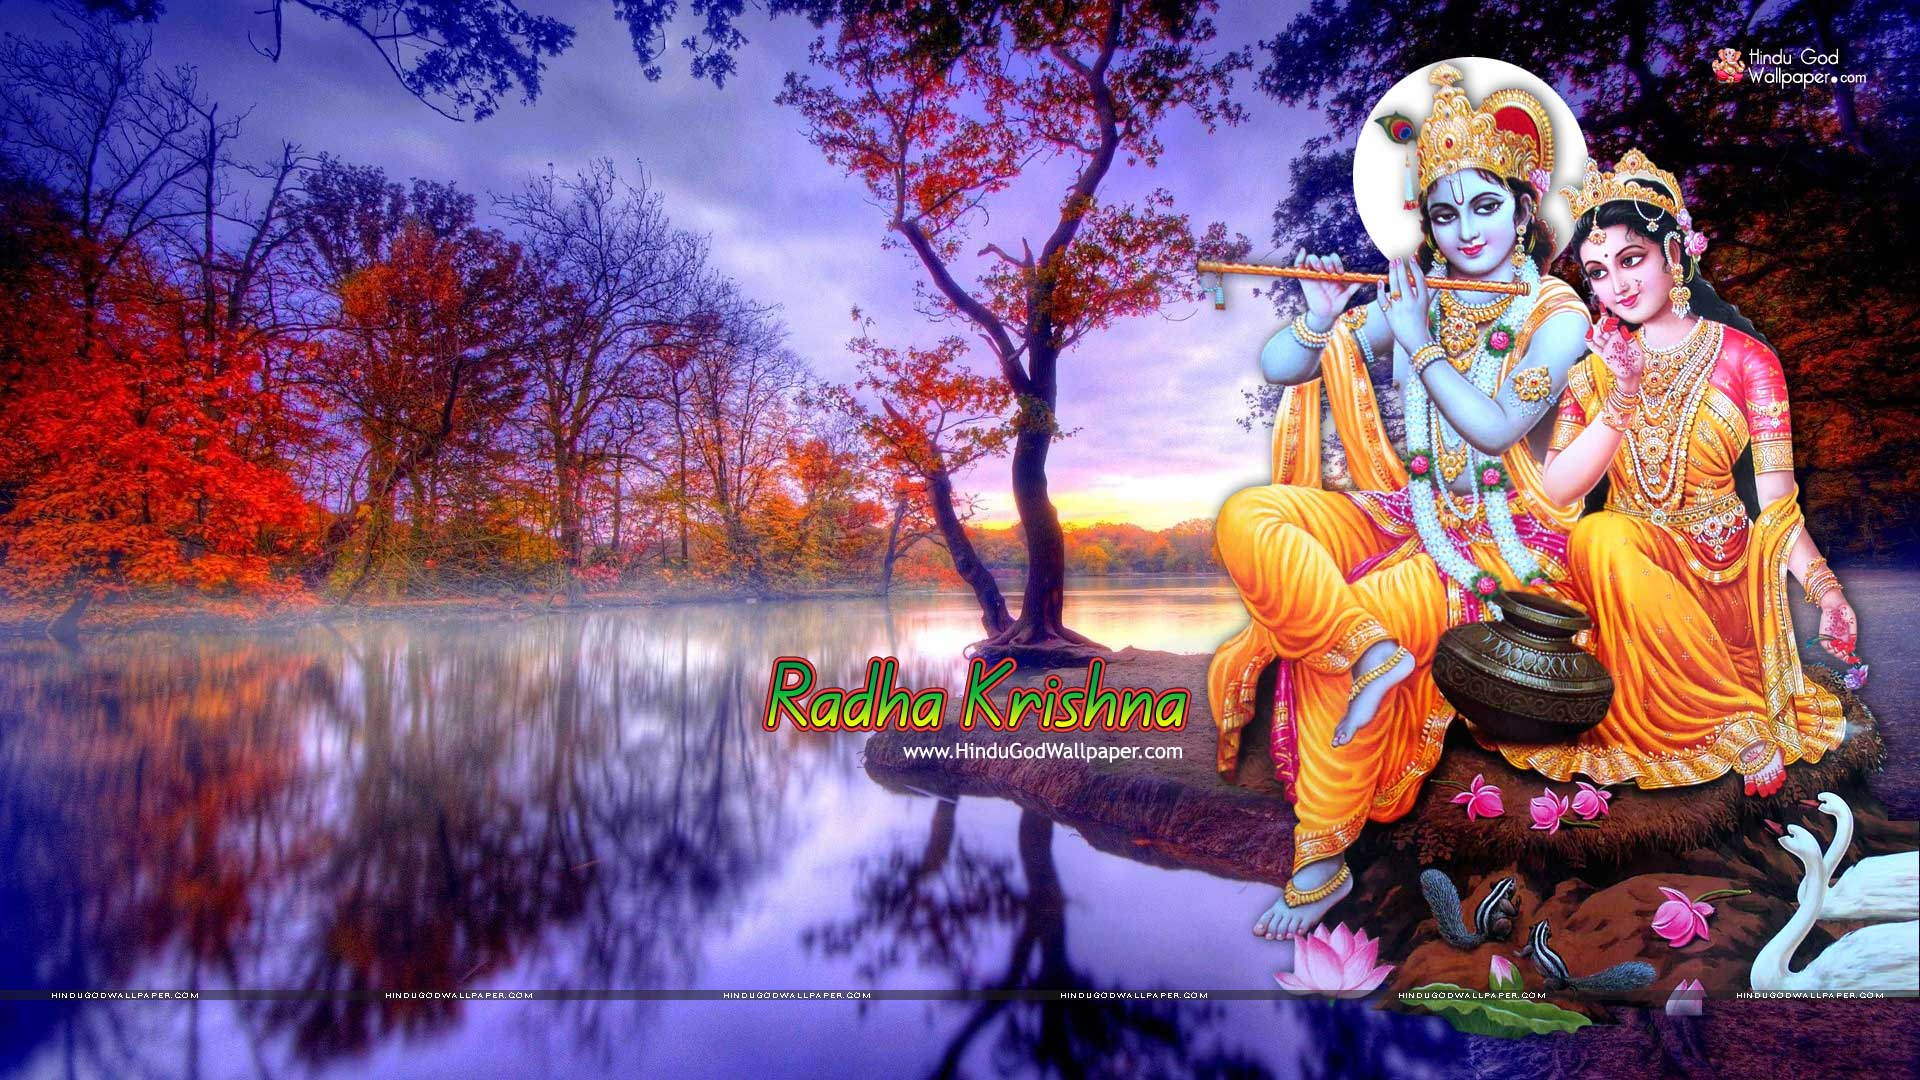 krishna wallpaper free download for desktop